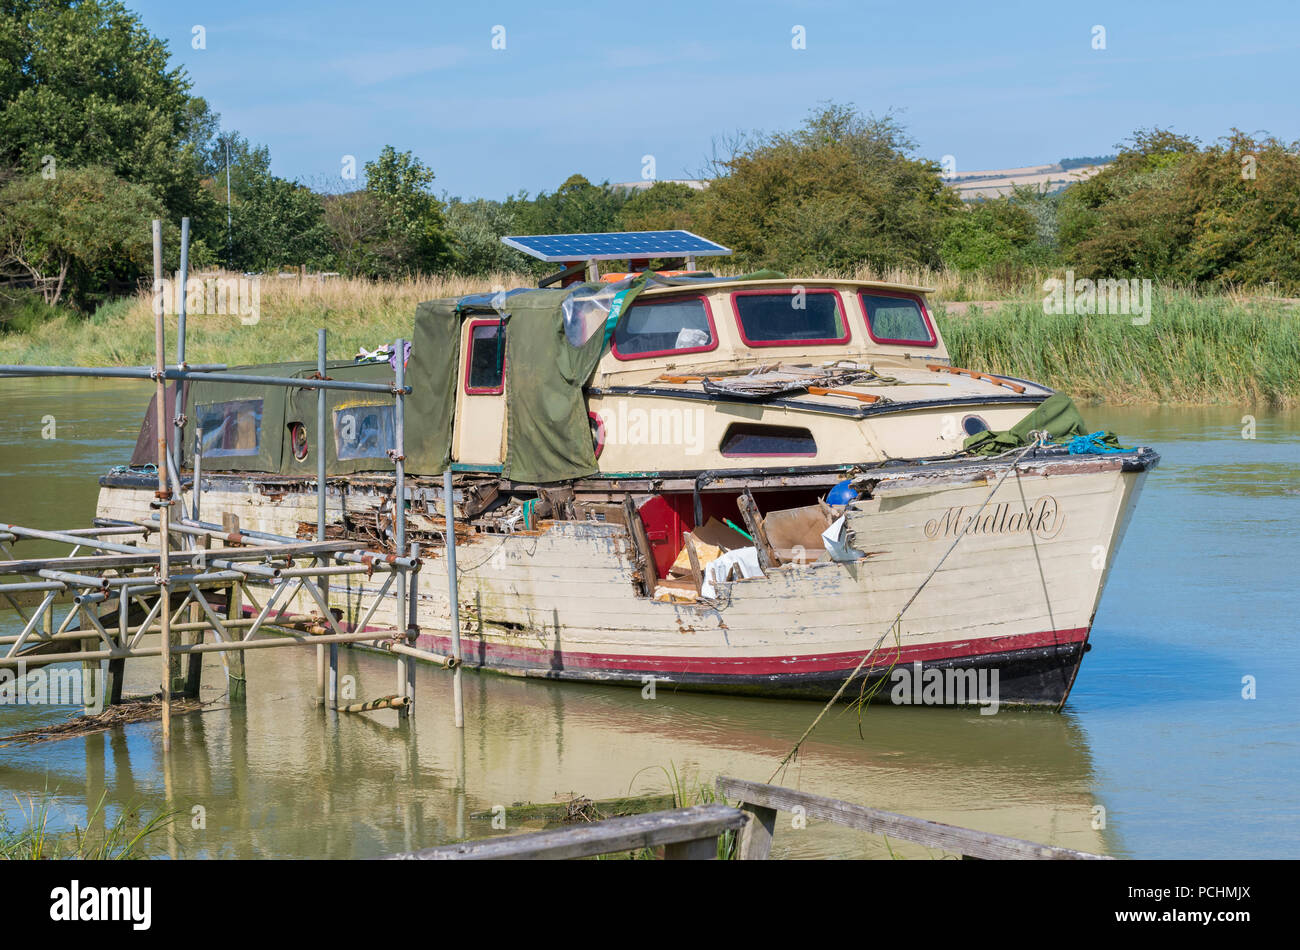 neglected-old-wooden-boat-with-hole-and-